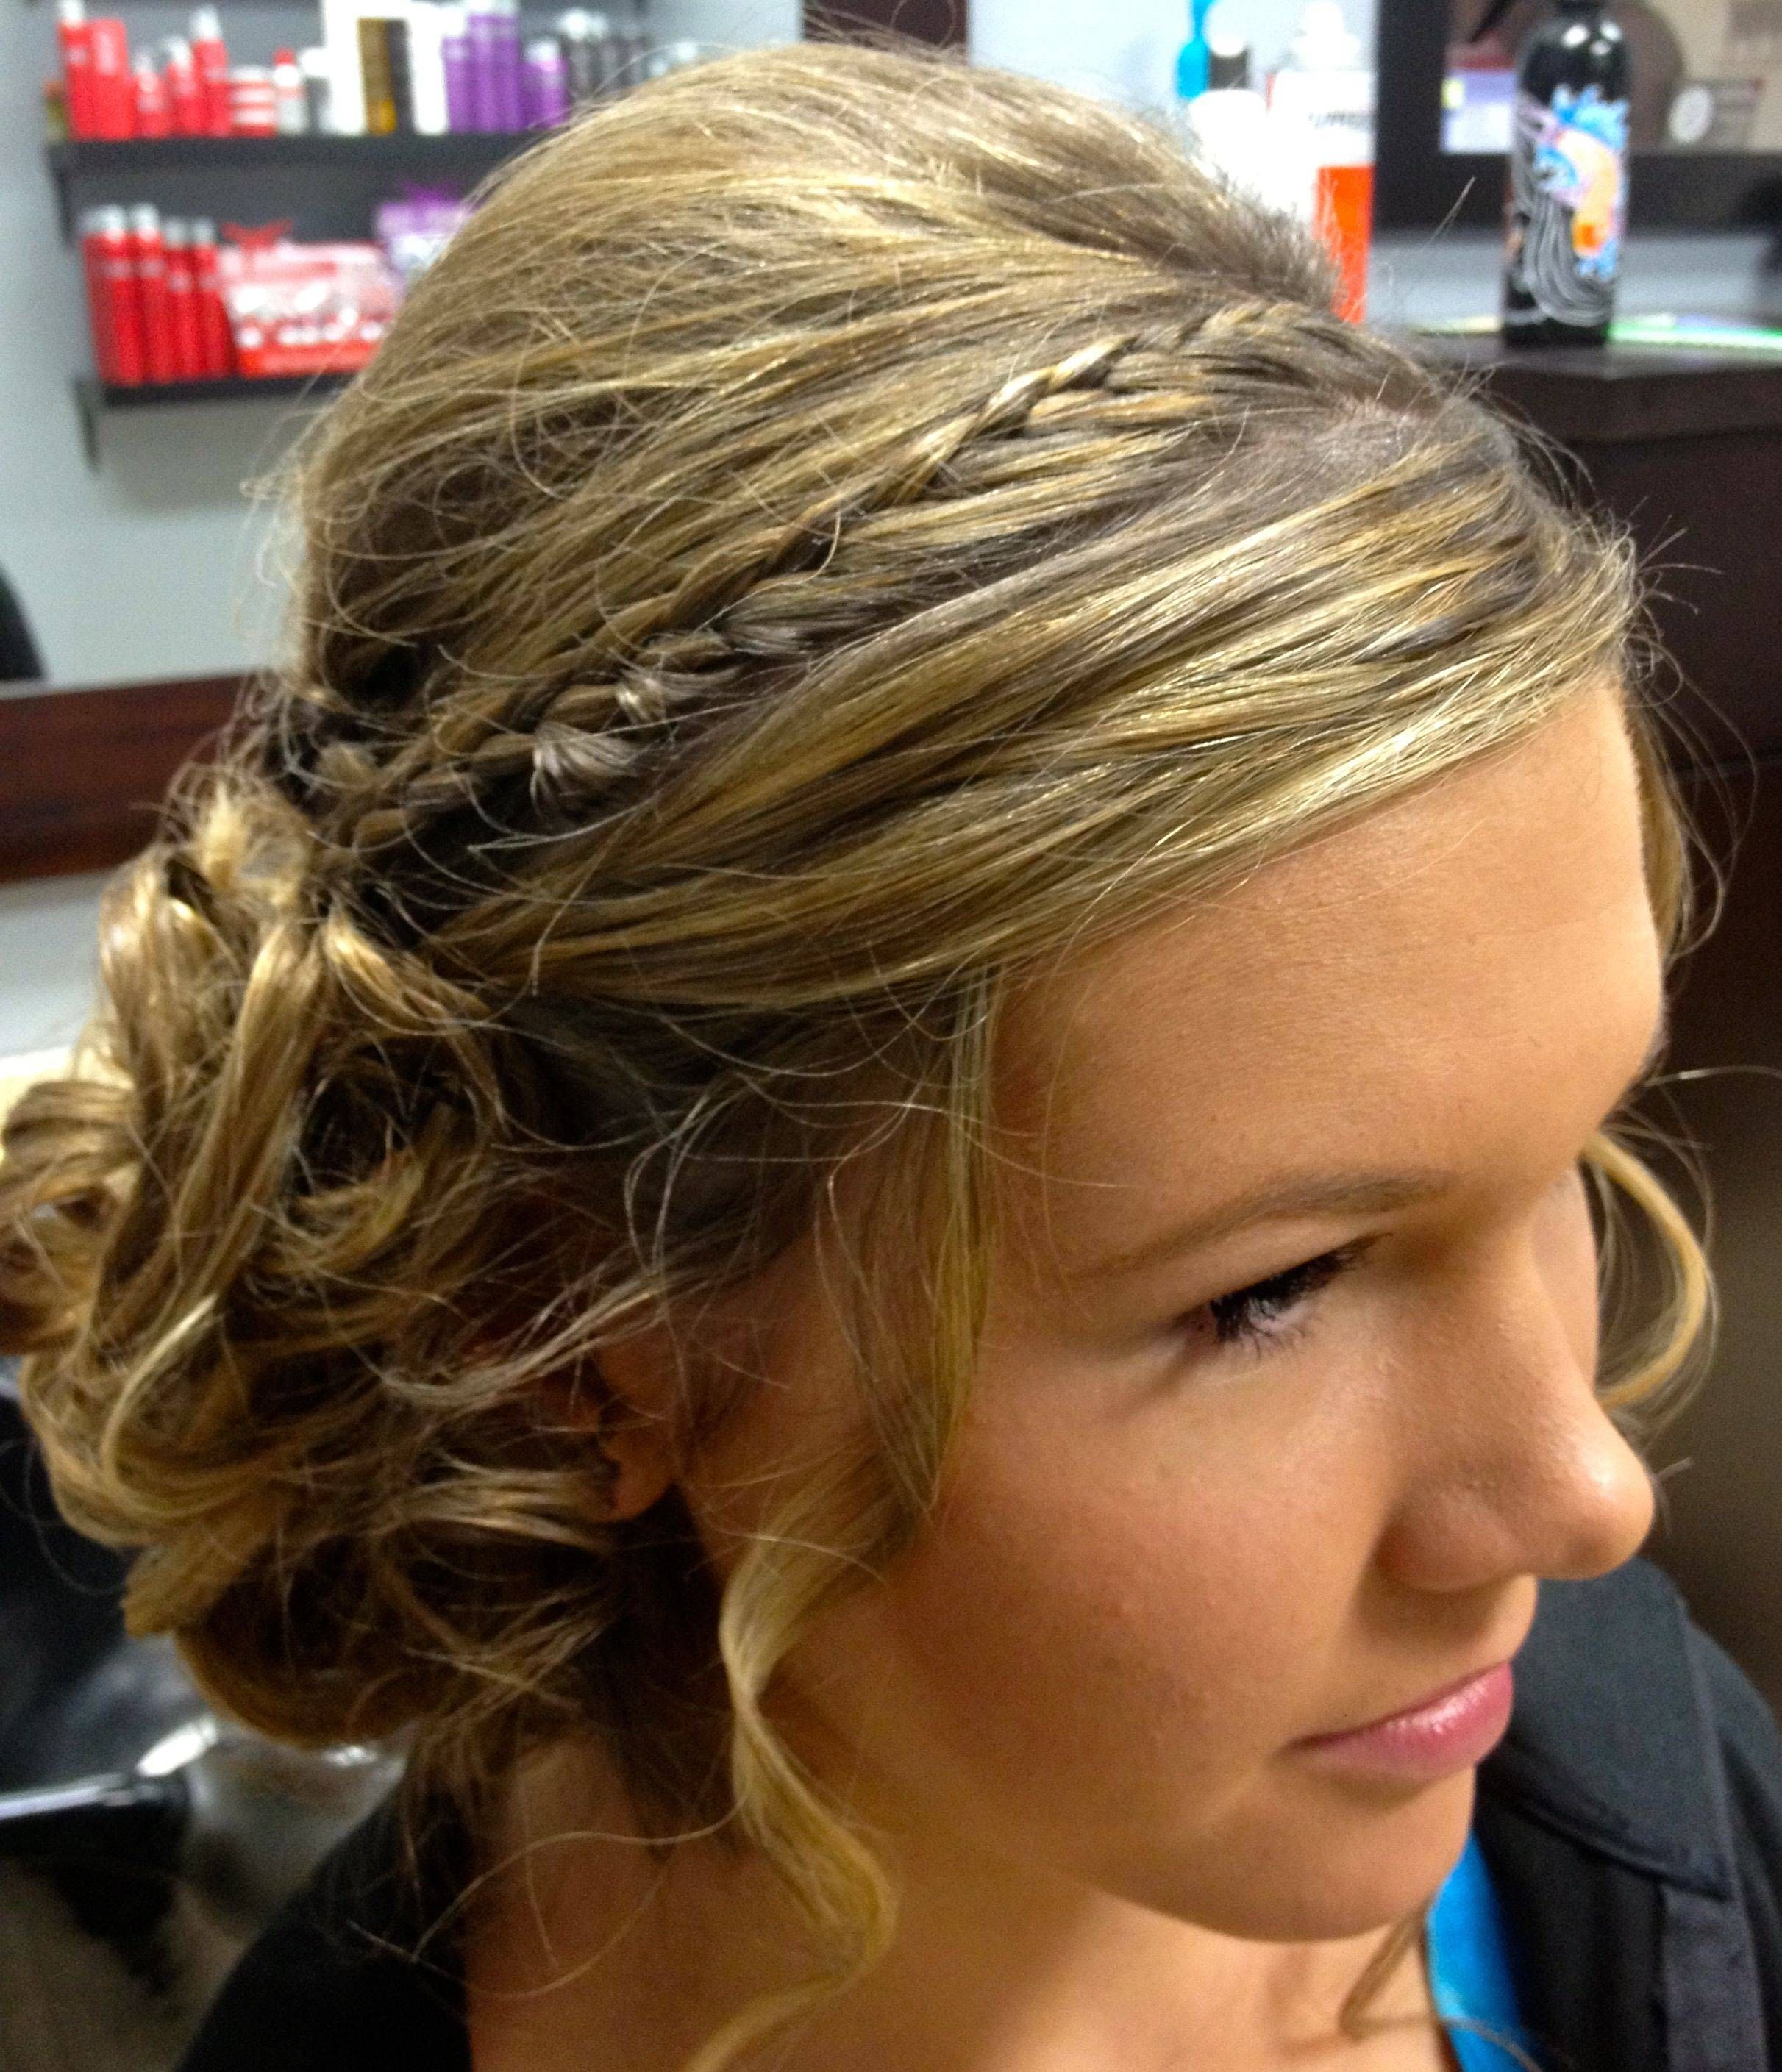 Prom Hair The Year s 10 Hottest Trends for 2016